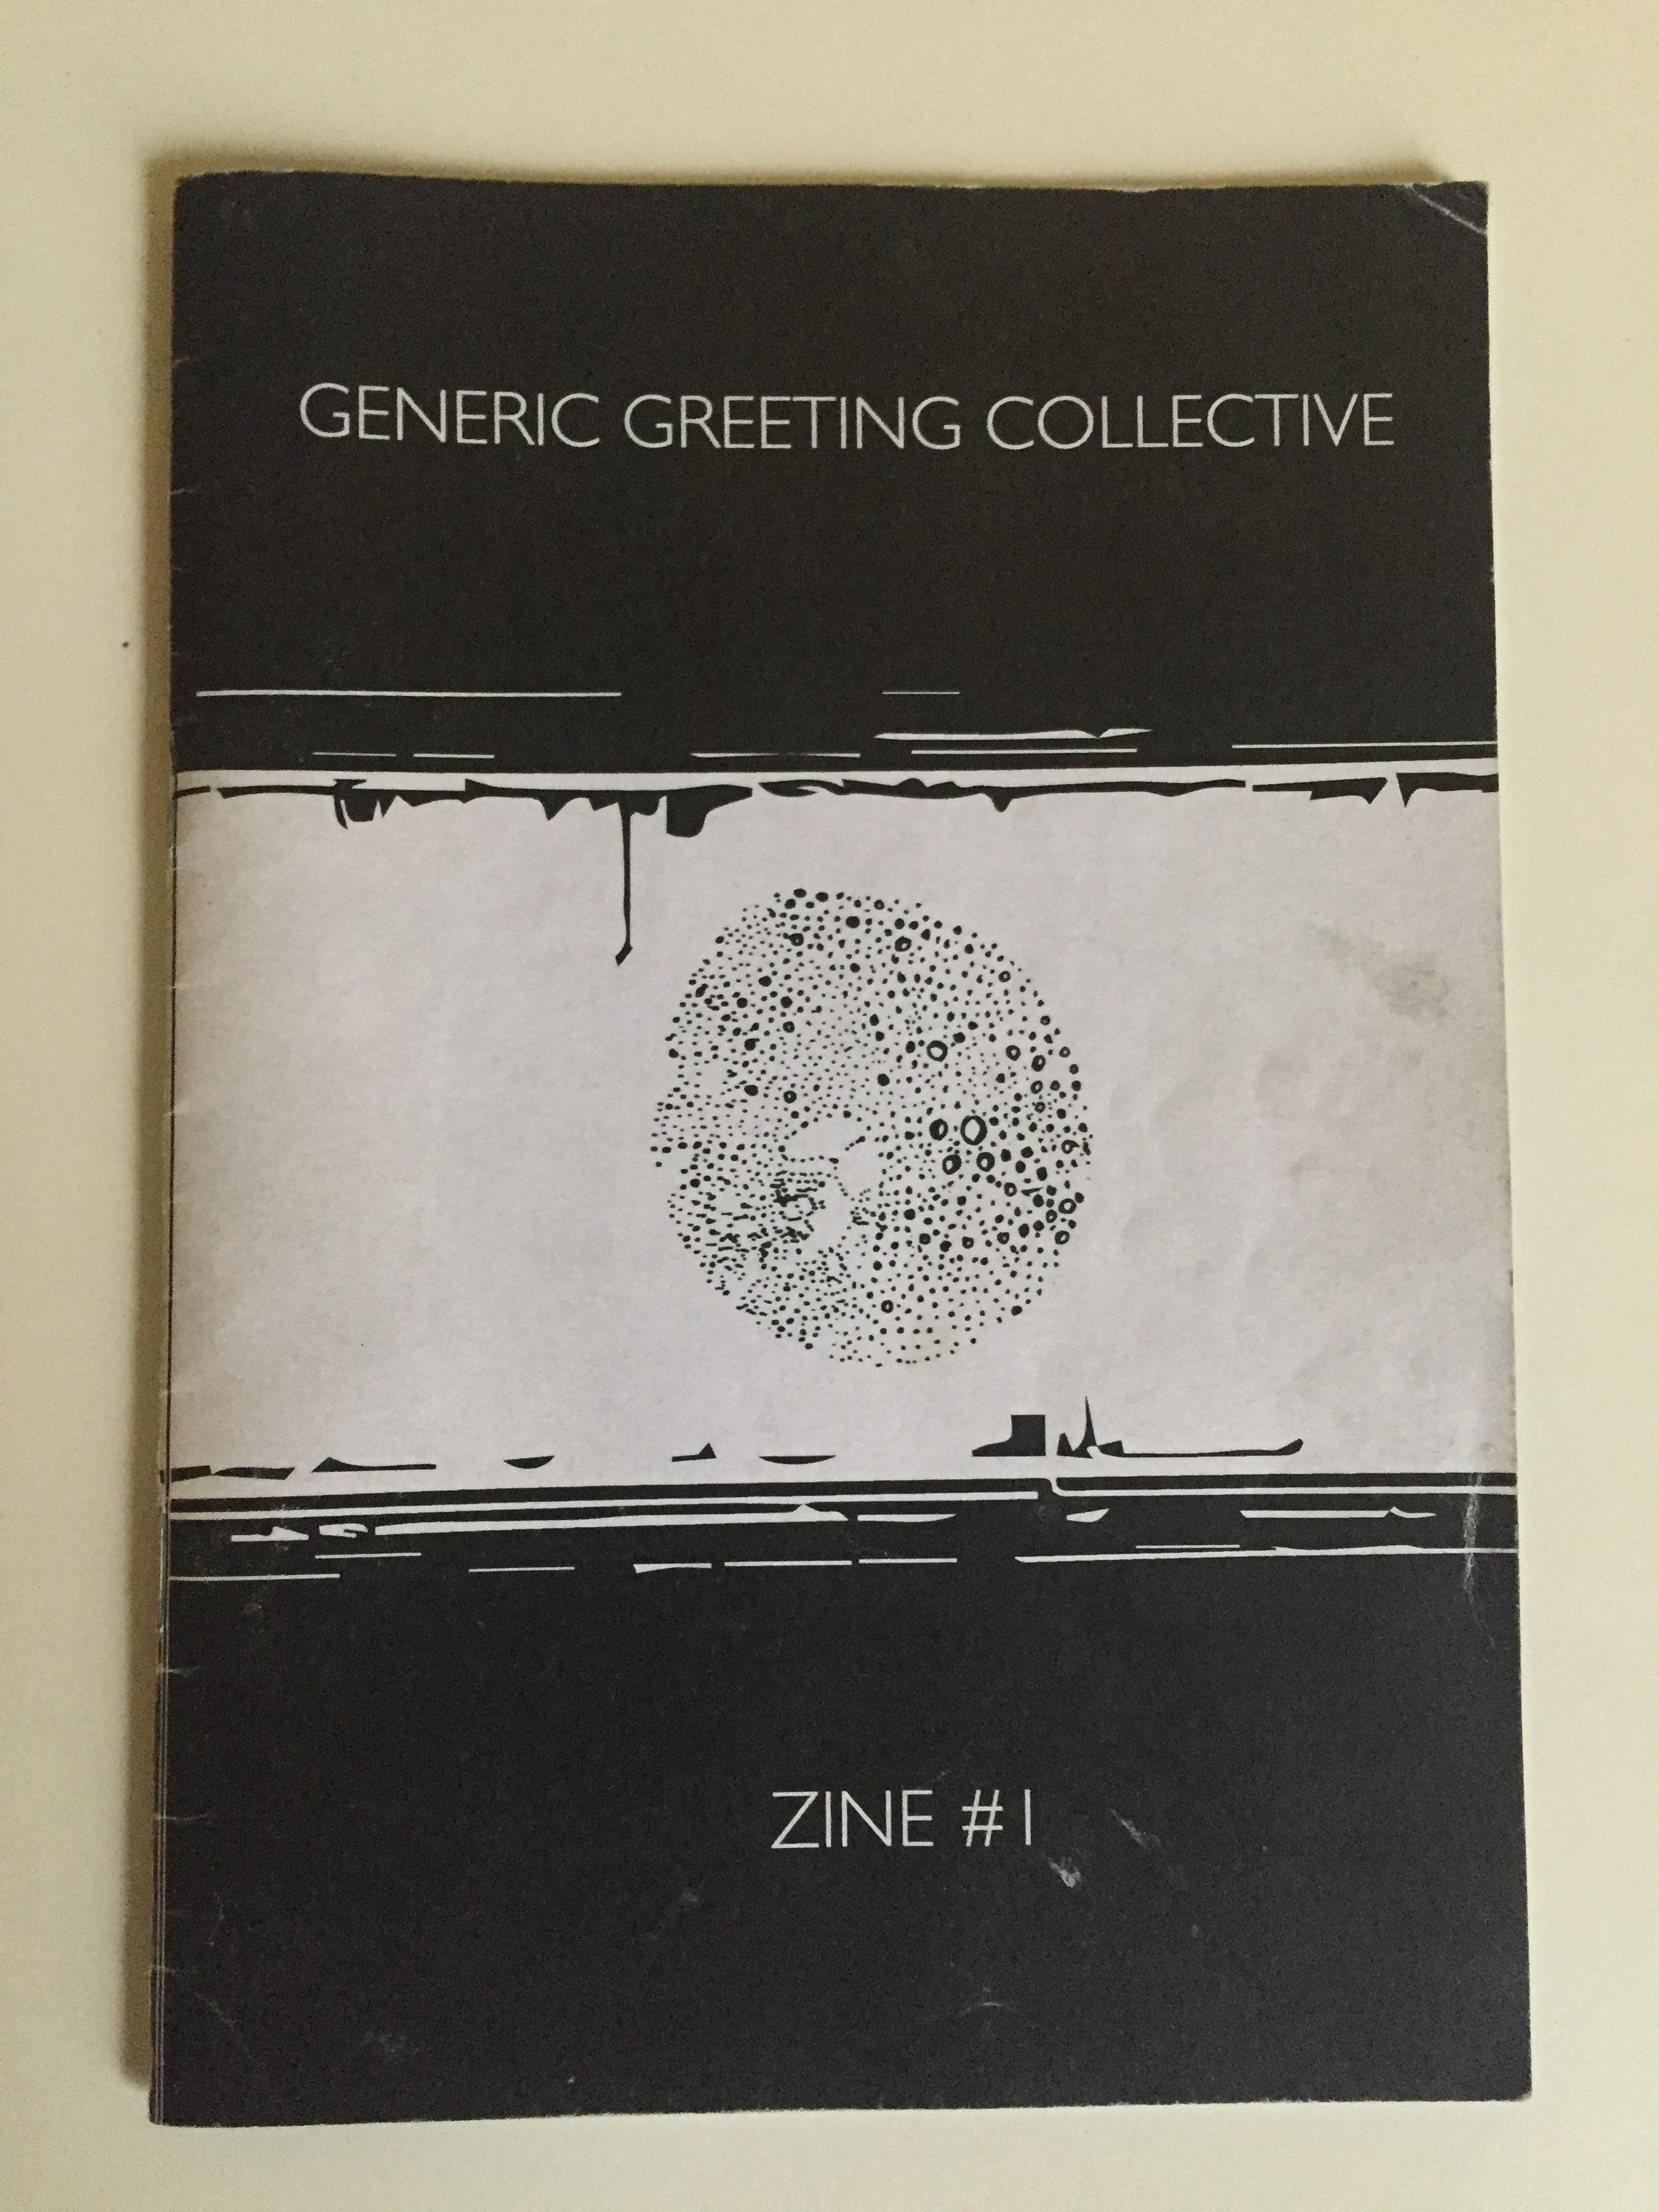 'Generic Greeting Collective Zine #1'